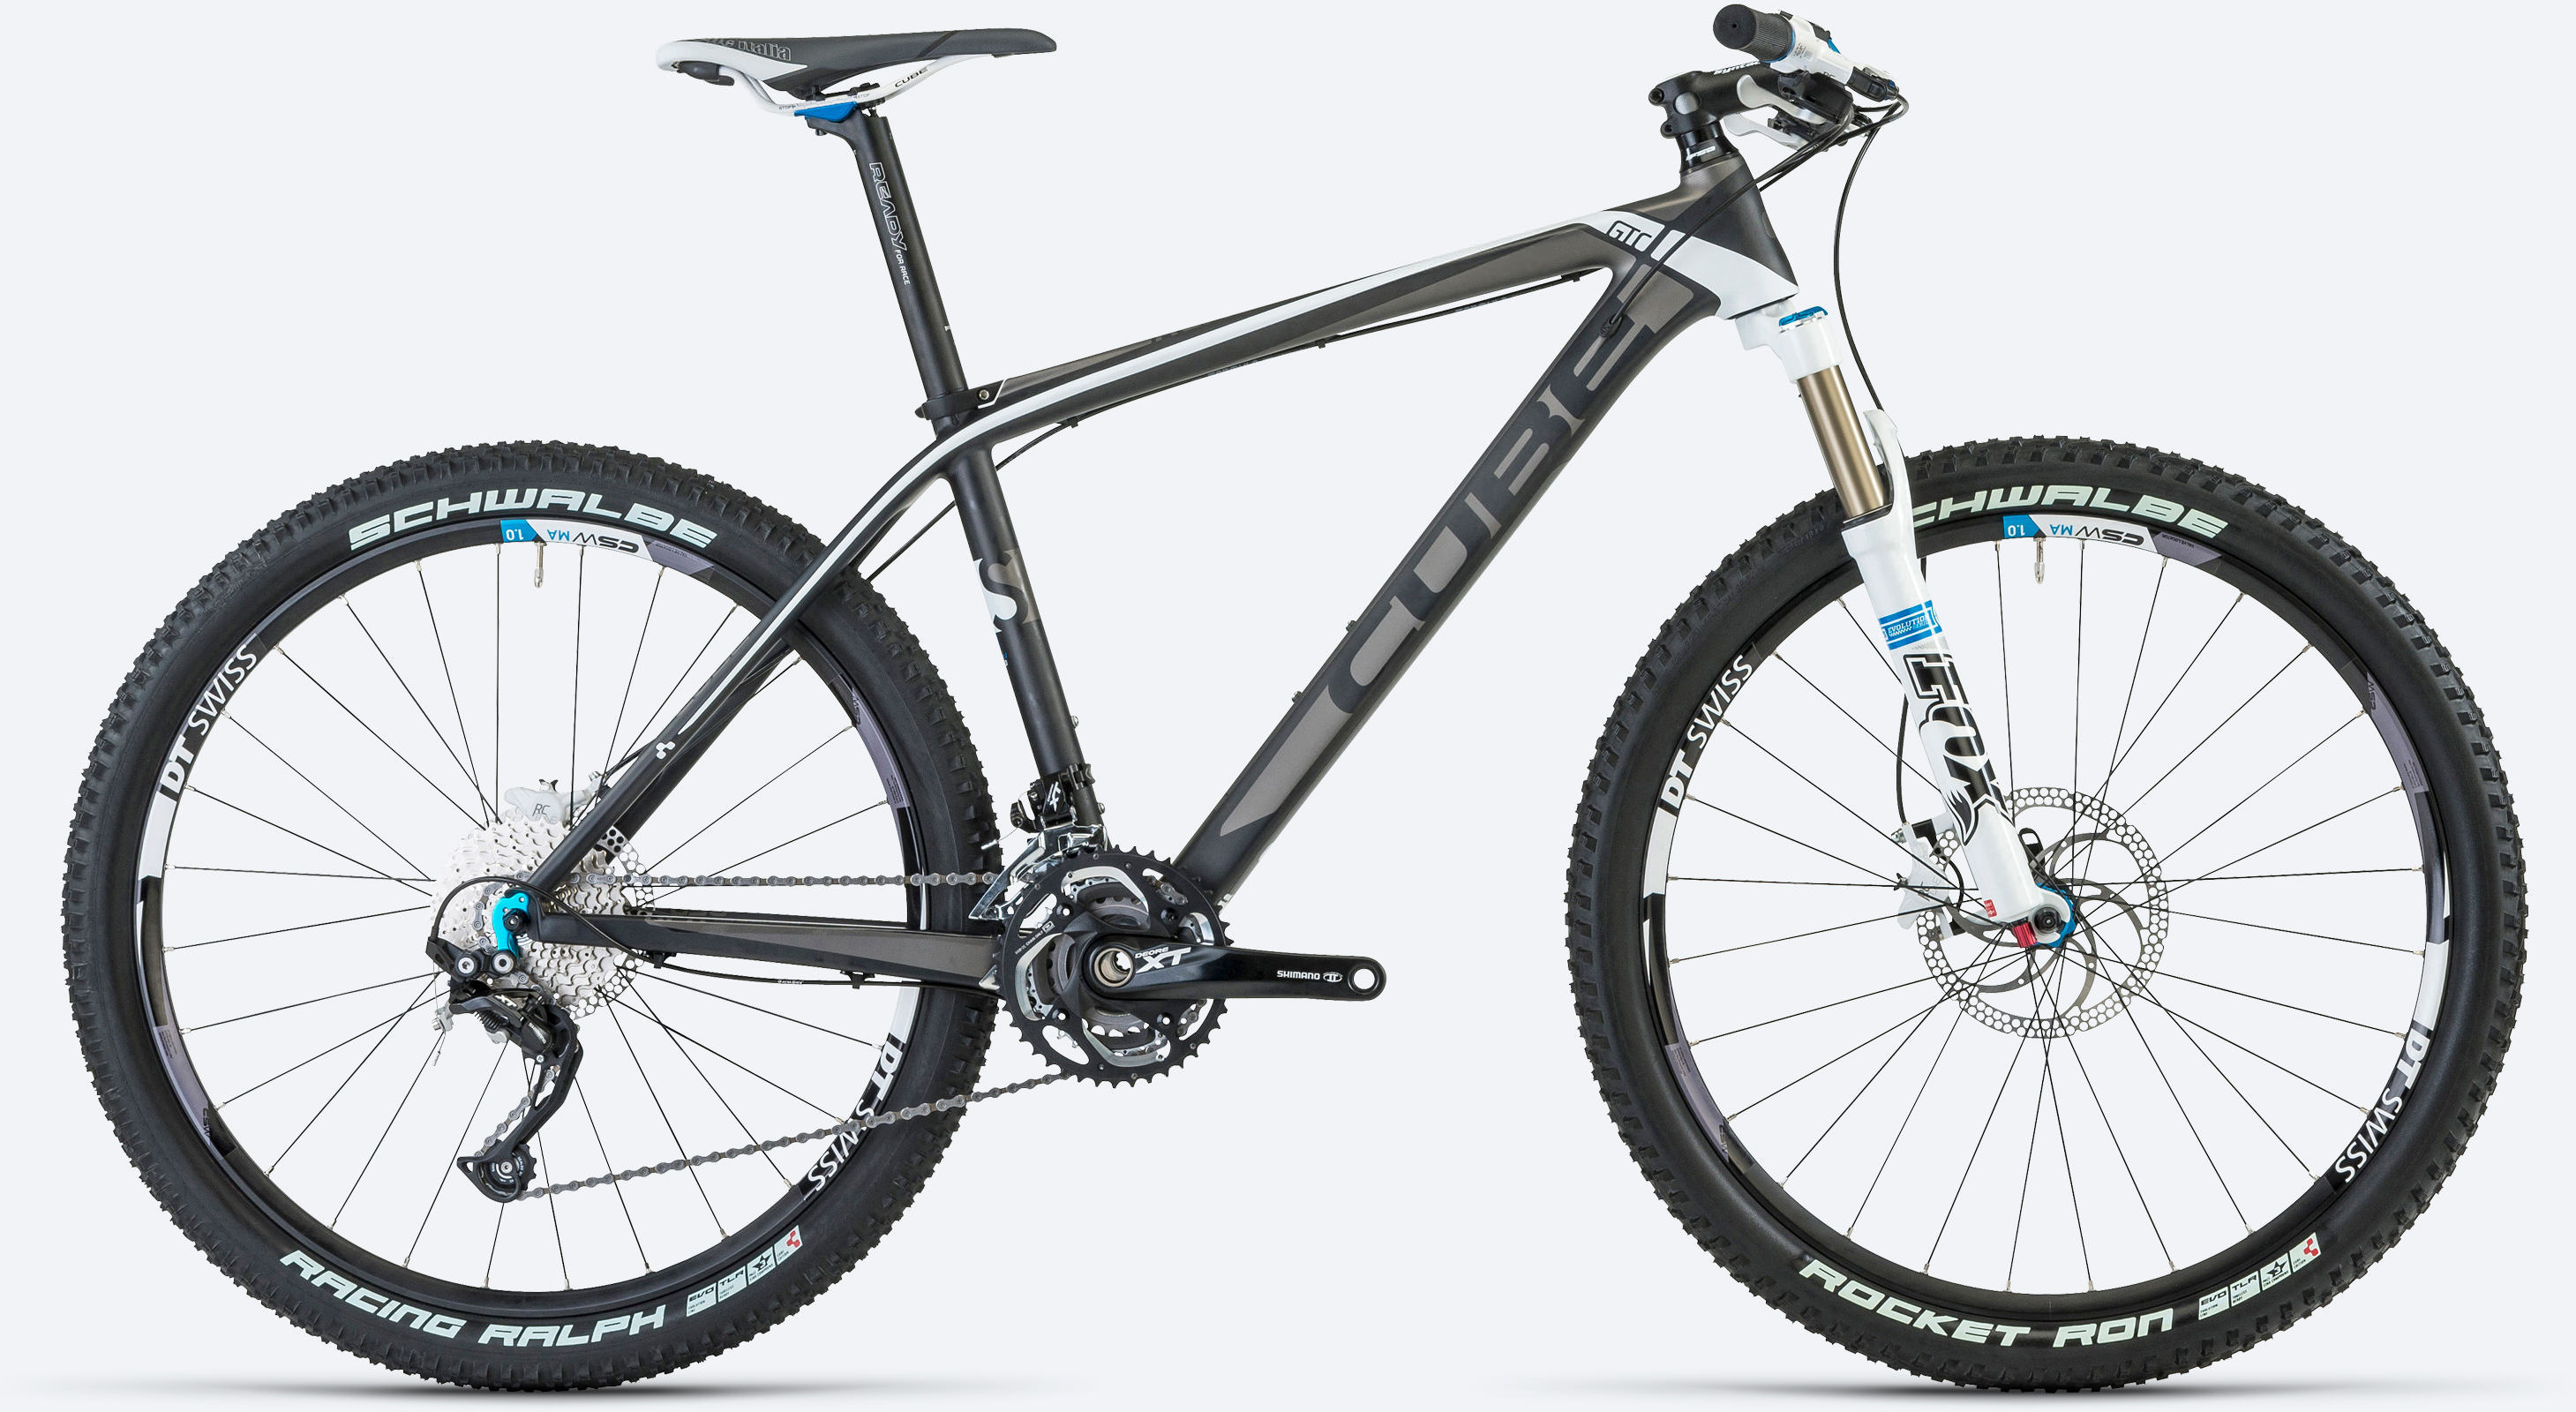 Cube Reaction GTC SL 26 2013 review - The Bike List